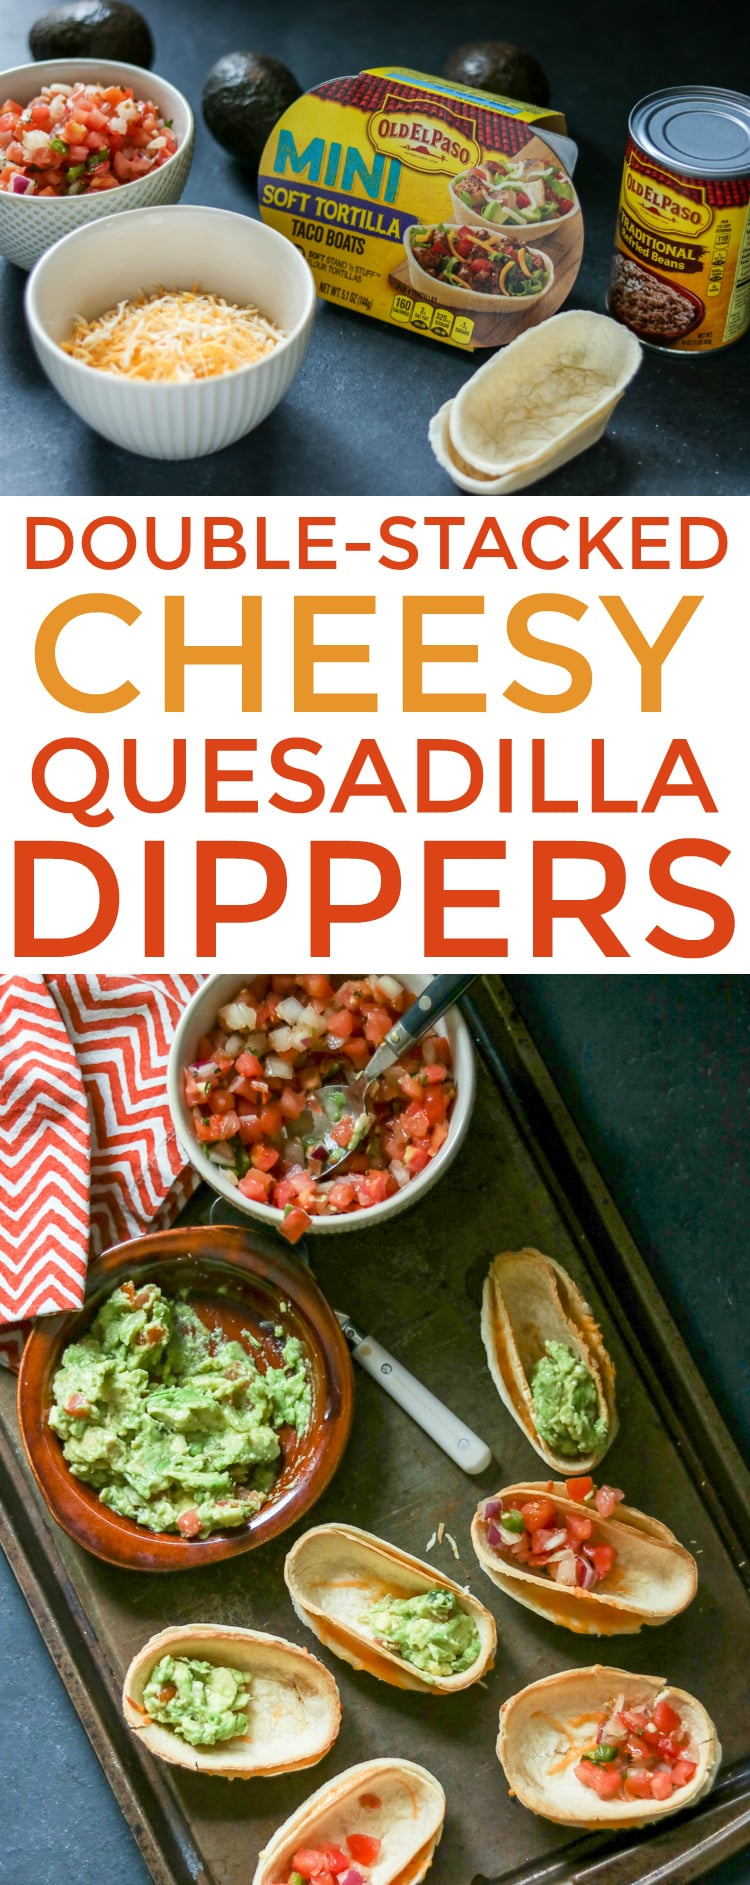 Simple, yet satisfying, these cheesy quesadilla dippers are the perfect snack!